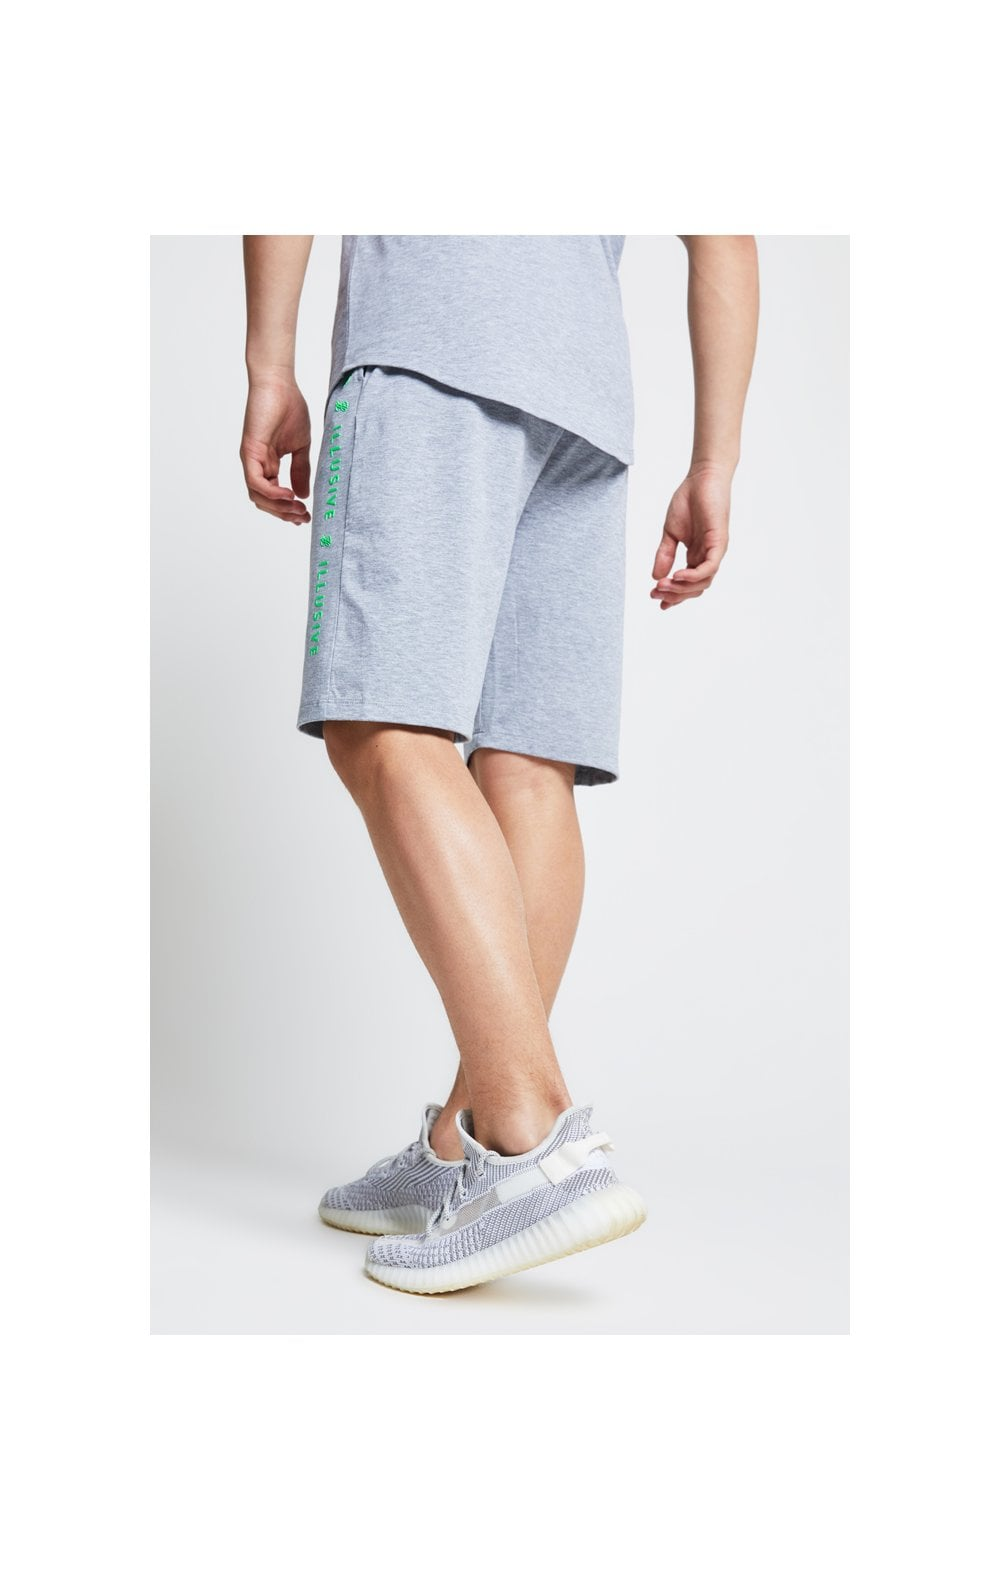 Illusive London Tape Jersey Shorts - Grey & Neon Green (1)